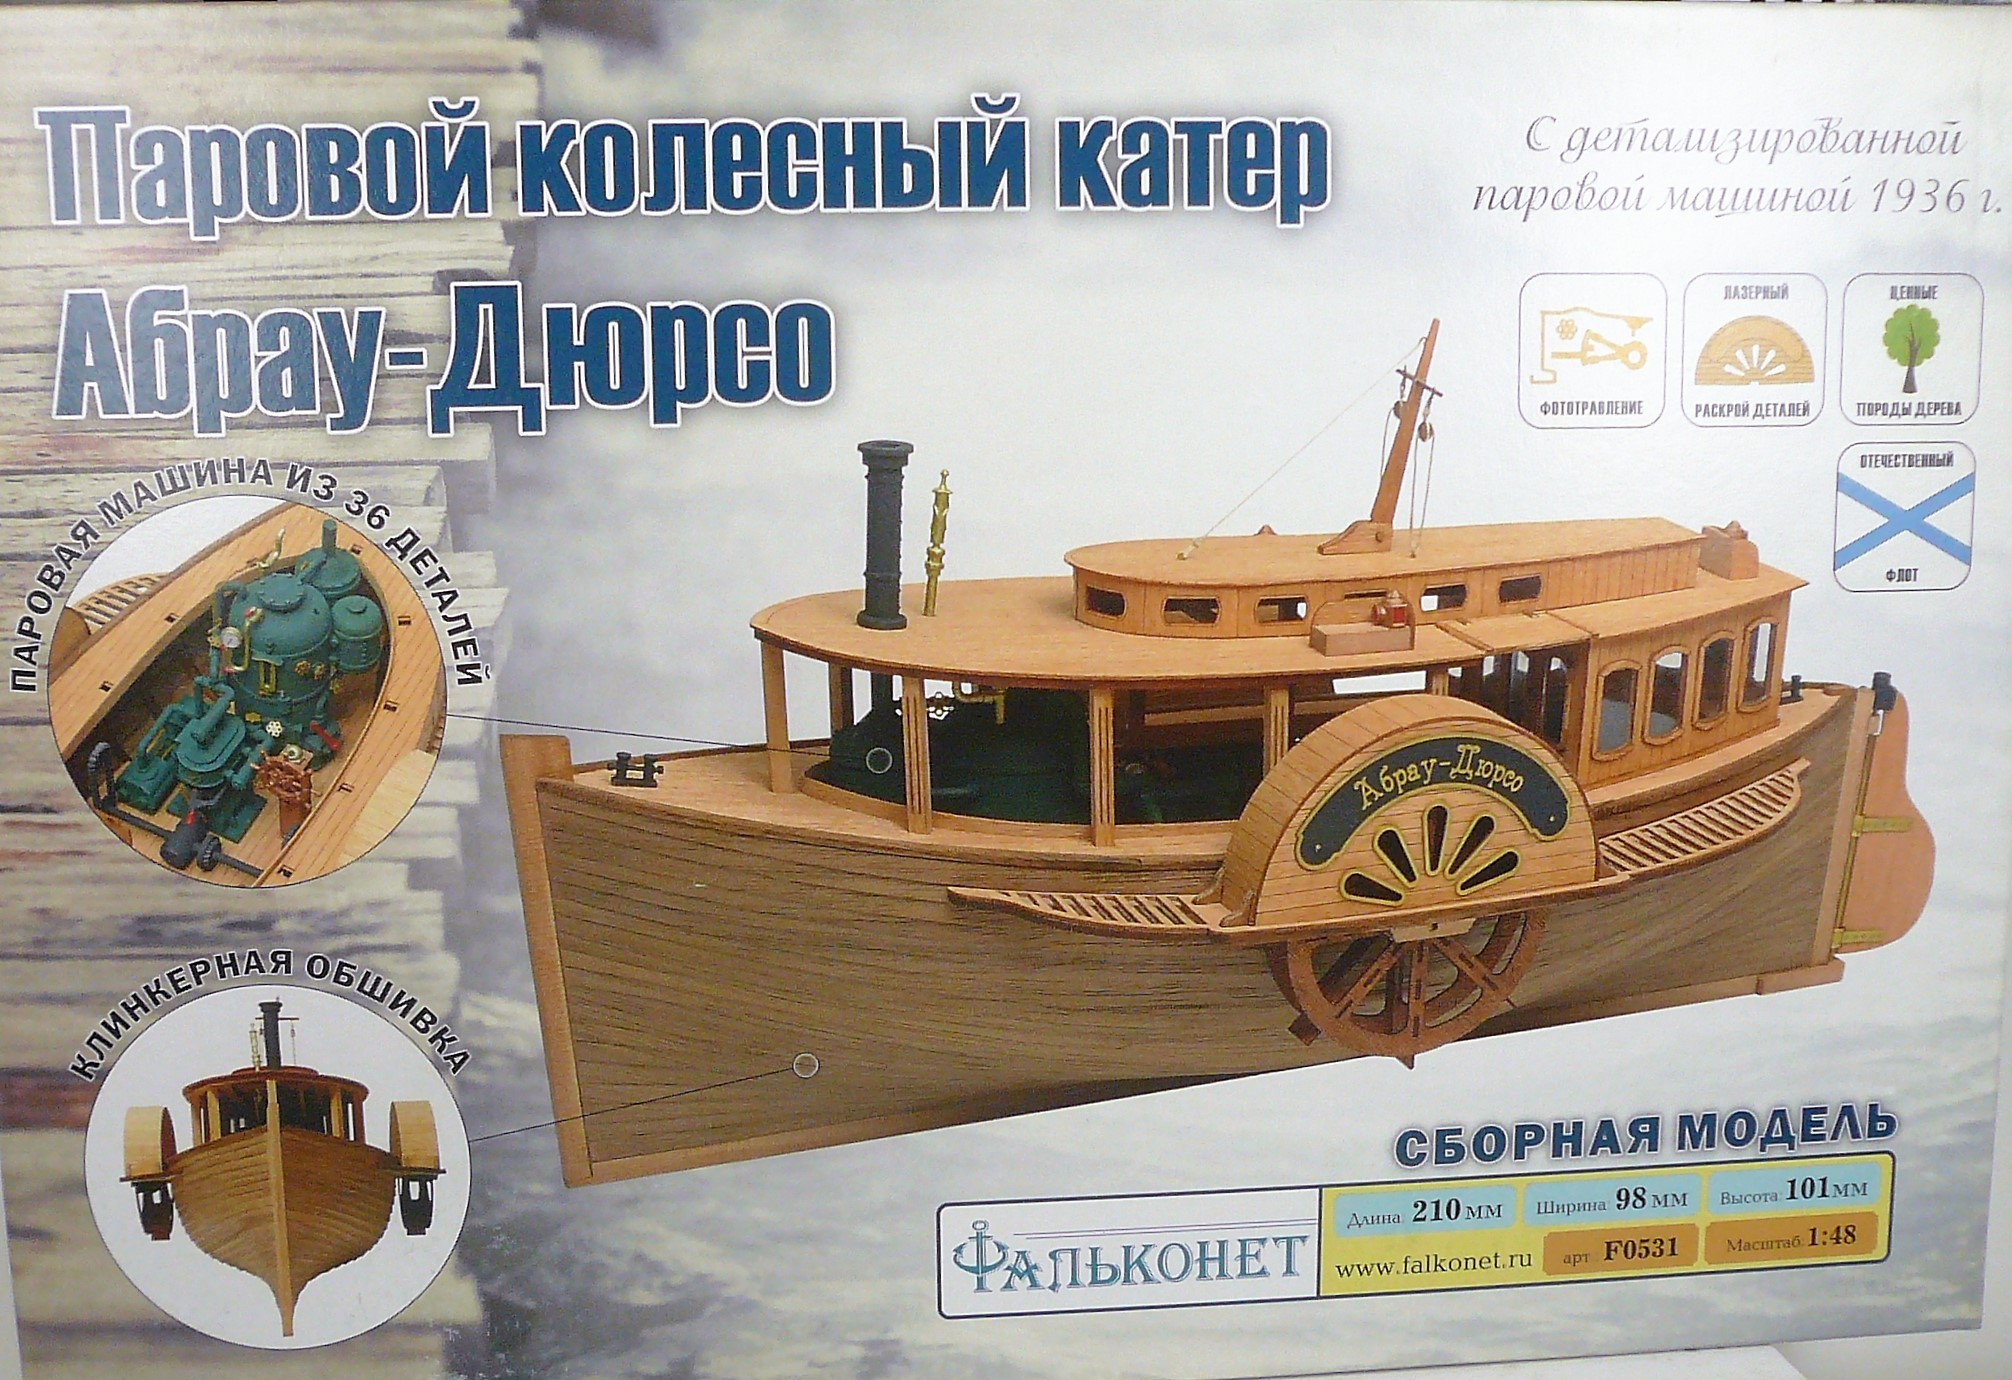 Falkonet F0531 Steam Paddle BoatAbrau-Dyurso - Scale 1:48 Plank on Bulkhead Kit